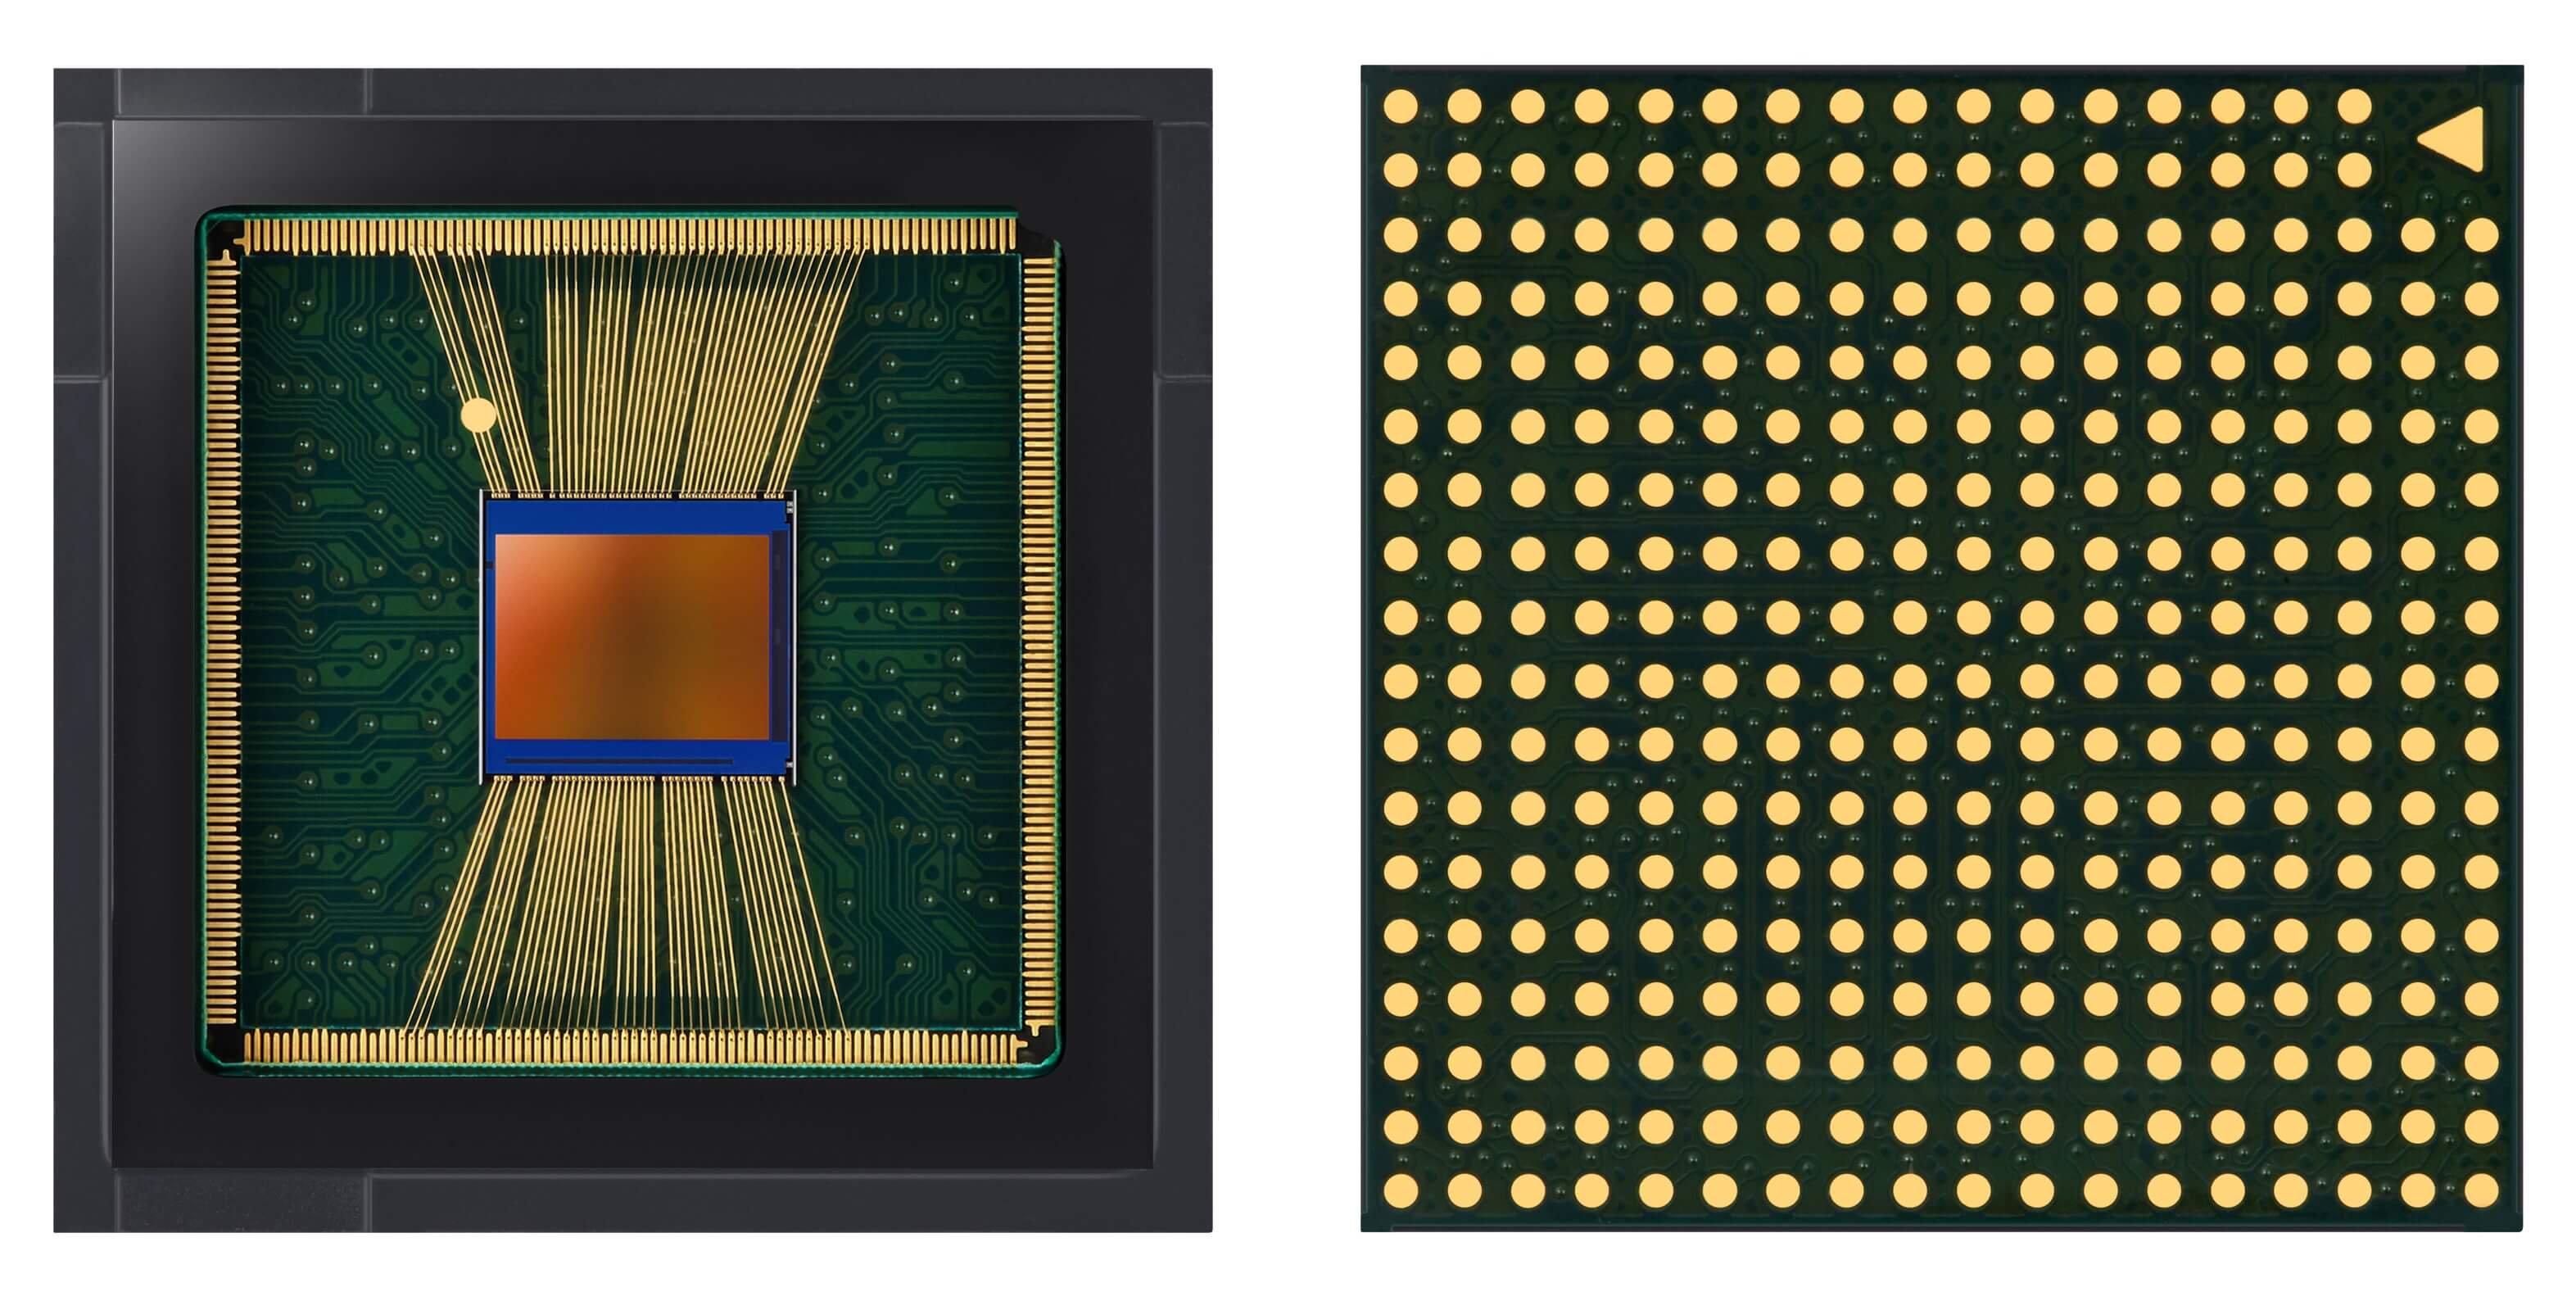 Samsung launches 20MP image sensor for hole-punch displays